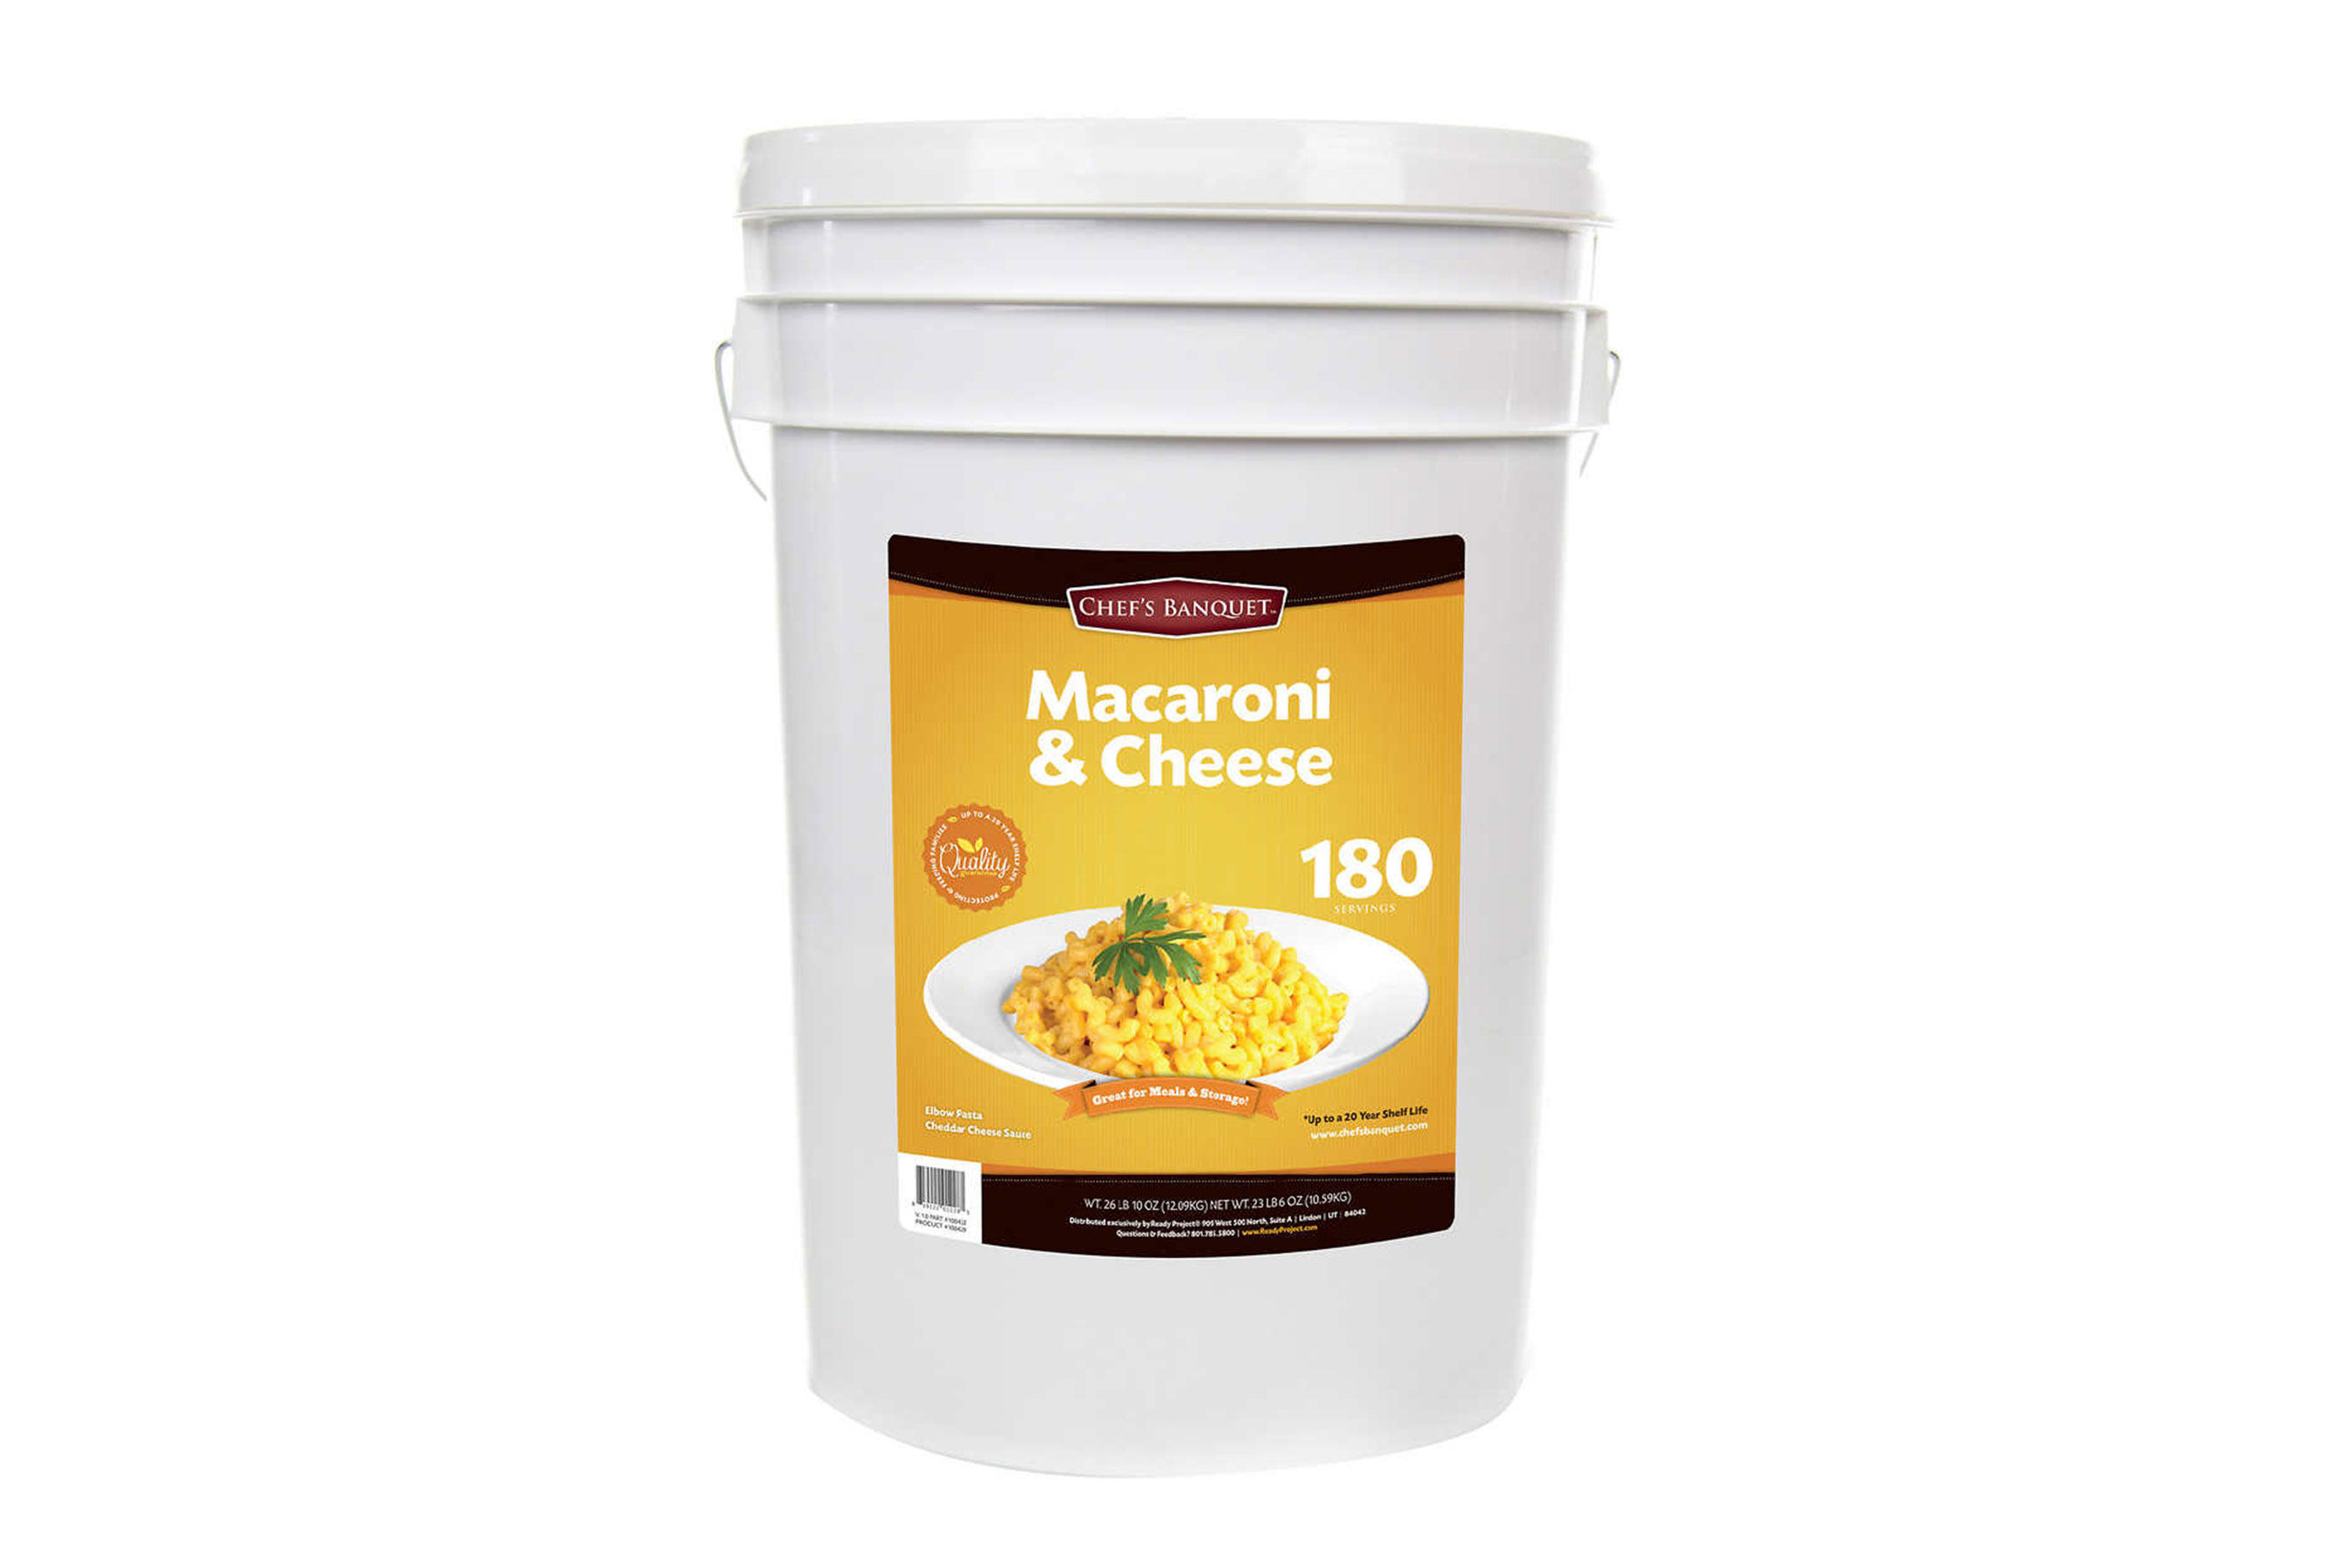 Costco Chef Banquet Macaroni and Cheese